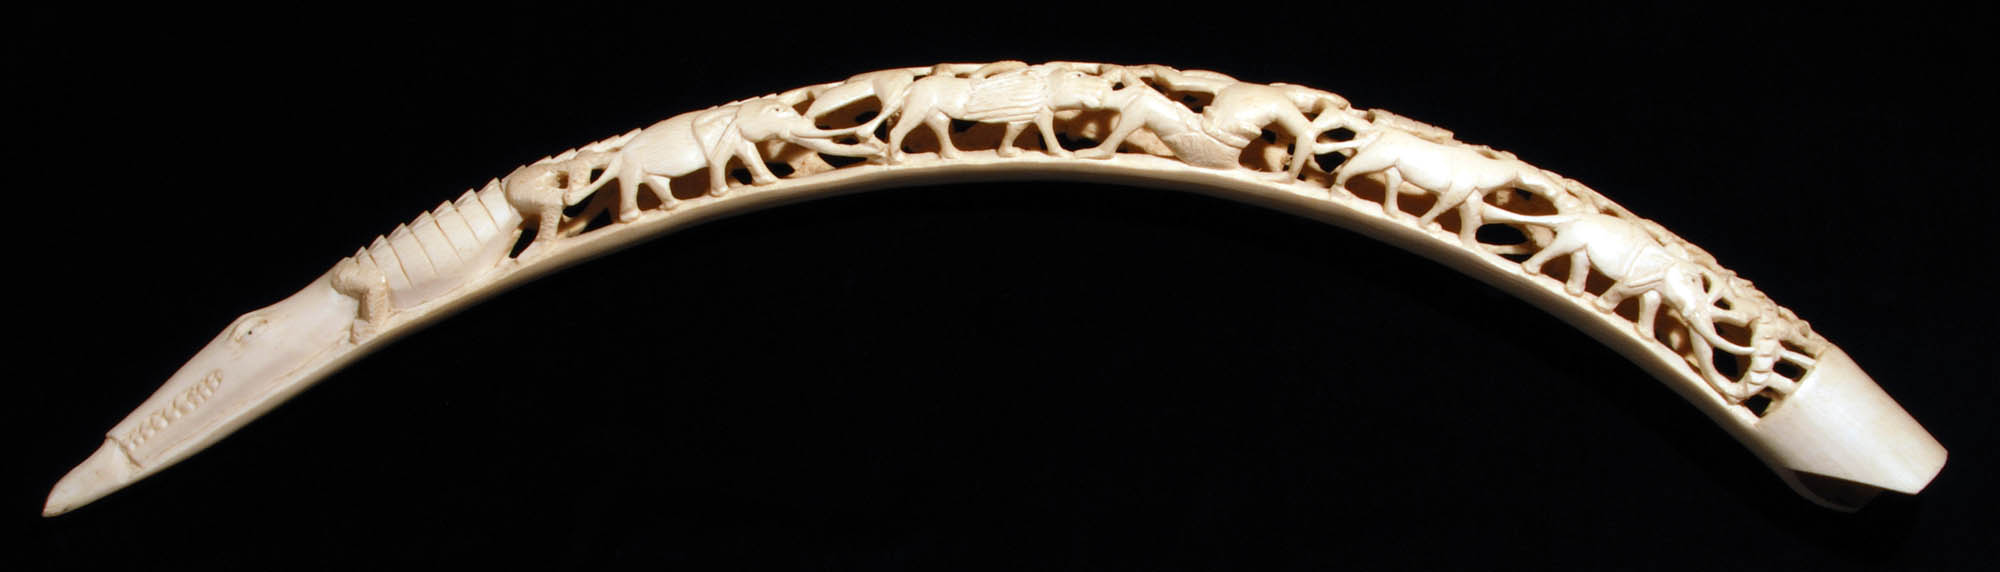 Decorative elephant tusk